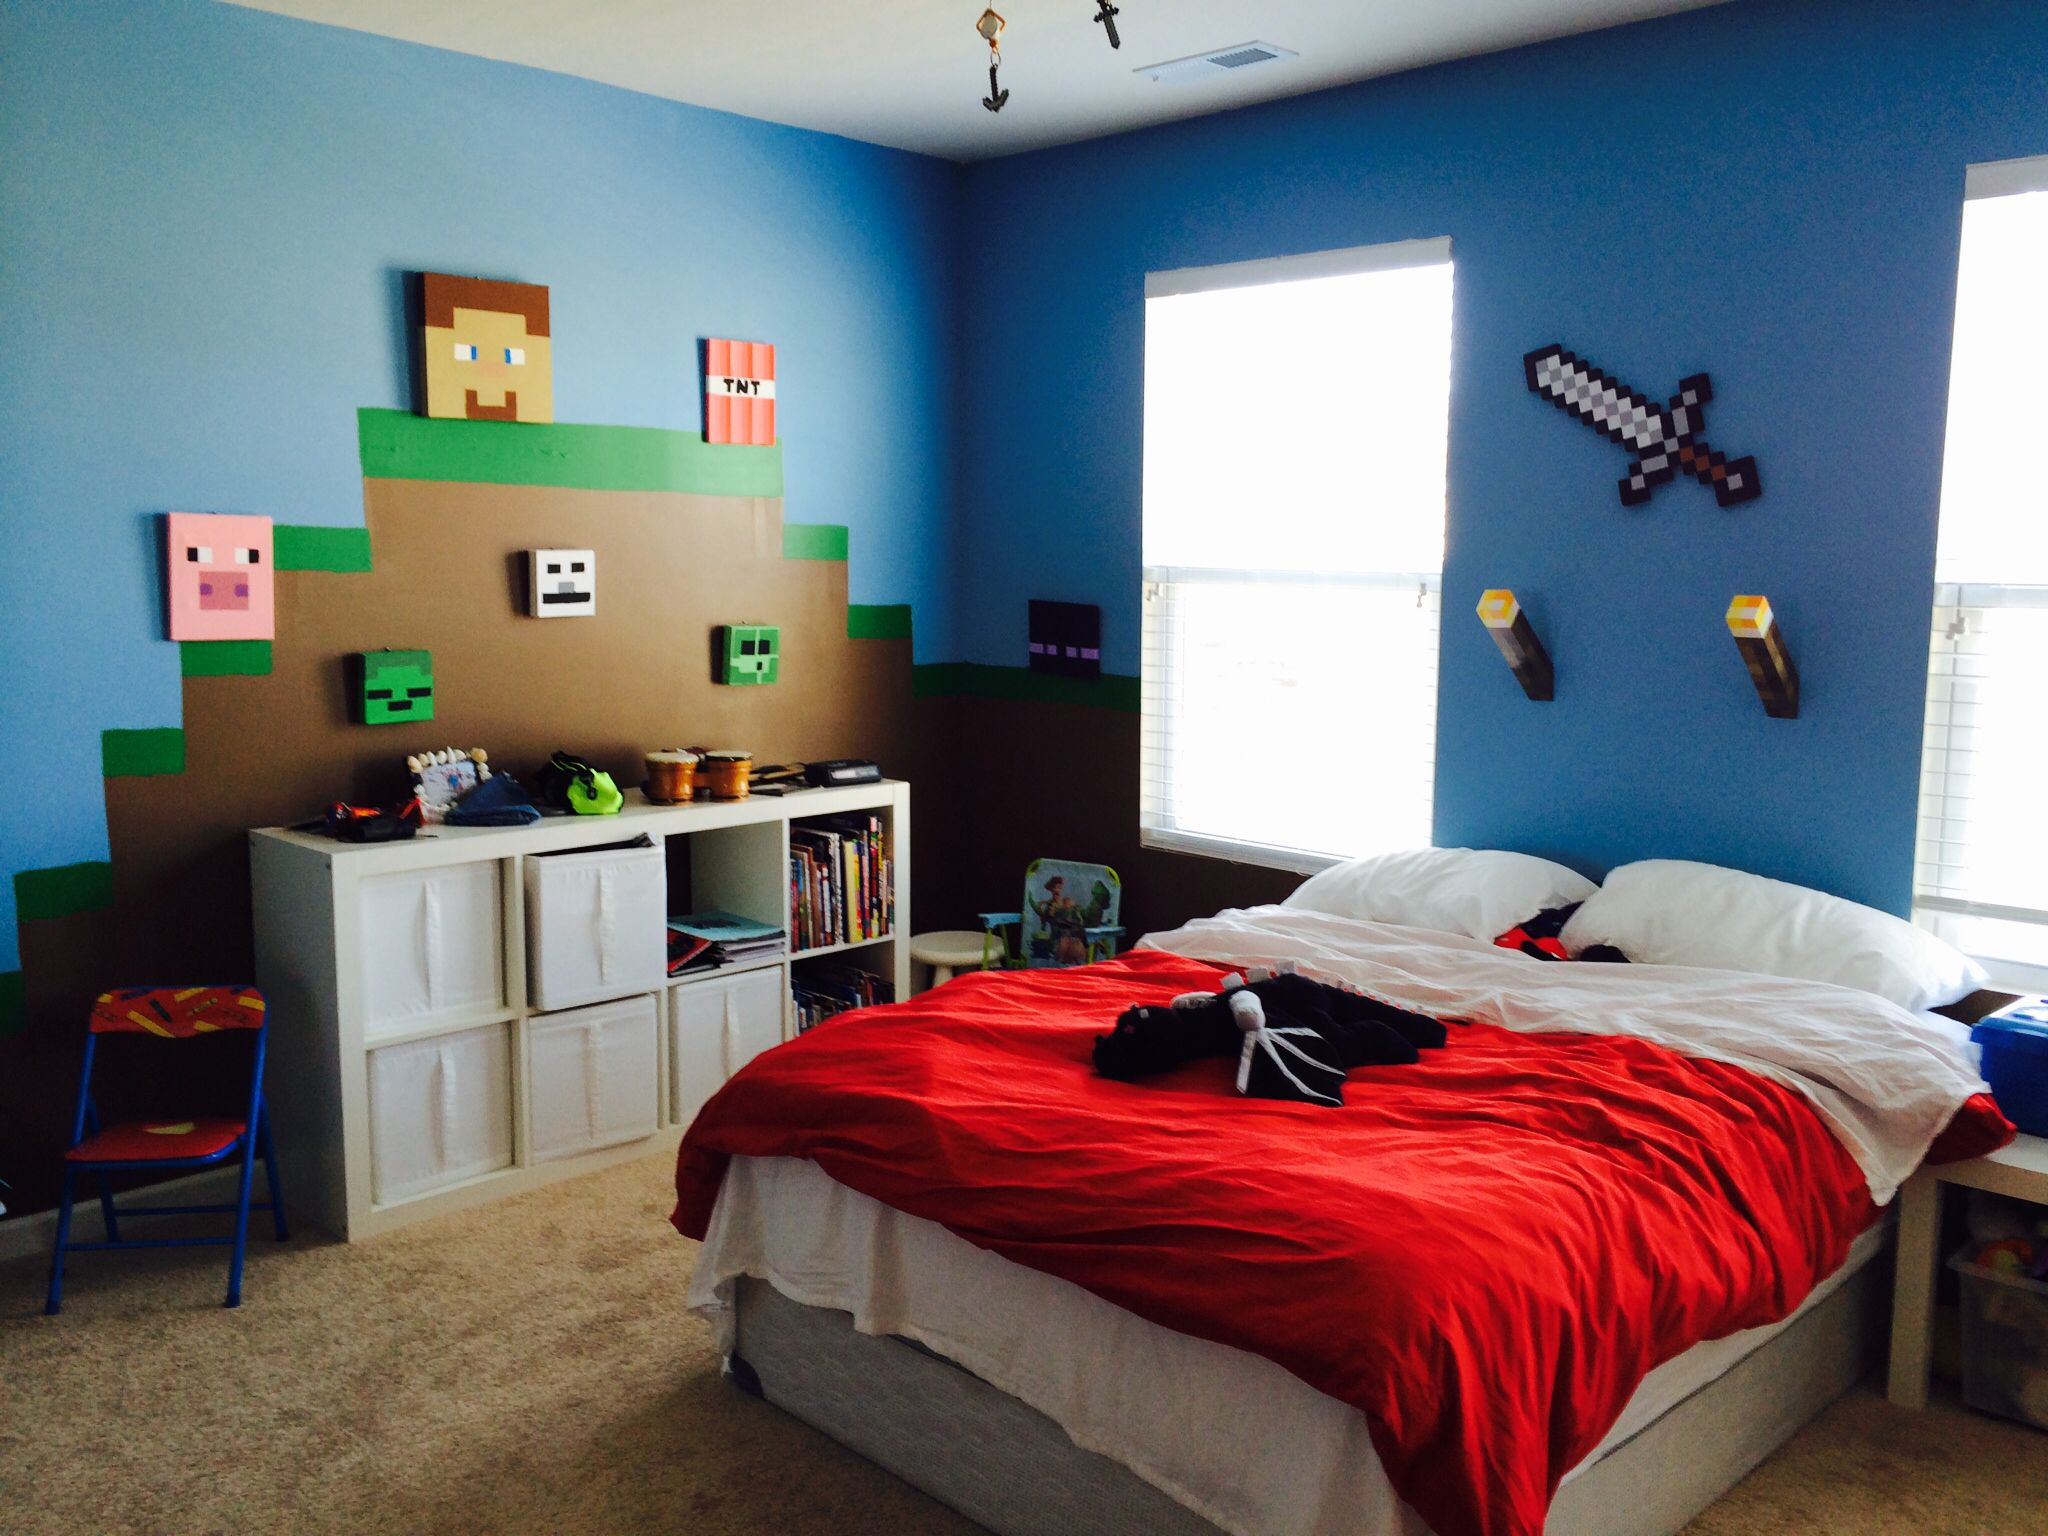 7 More Awesome Minecraft Bedrooms We Want! | Gearcraft ...